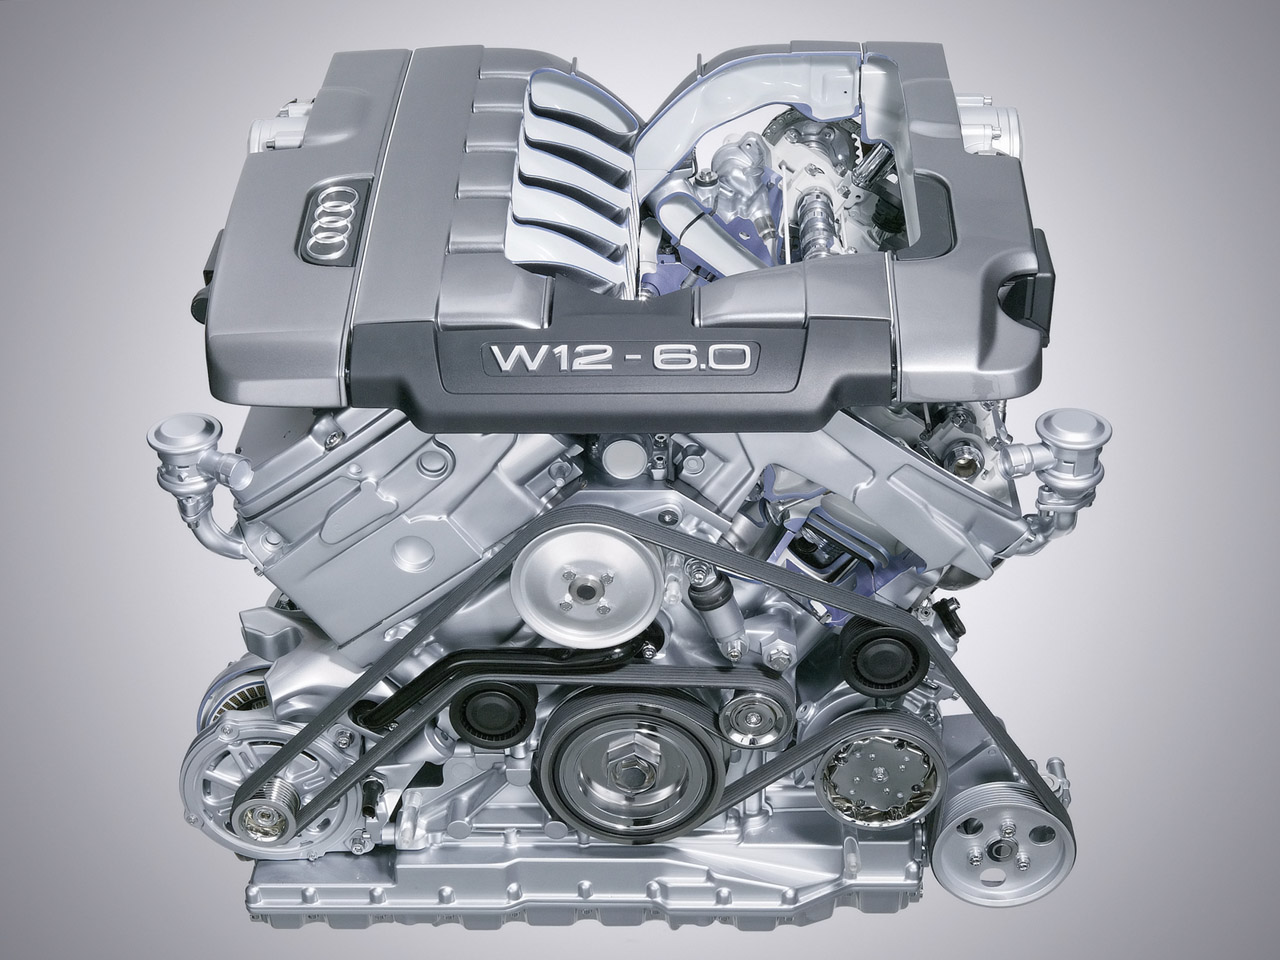 Infiniti G20 Radio Wiring Diagram besides 96 Honda Accord Cooling System Diagram additionally 2017 Alfa Romeo Duetto Spider additionally Volkswagen Engine Diagrams in addition 2017 Audi S3 Quattro 2018 Audi Release Date Price And Specs. on acura motor diagram